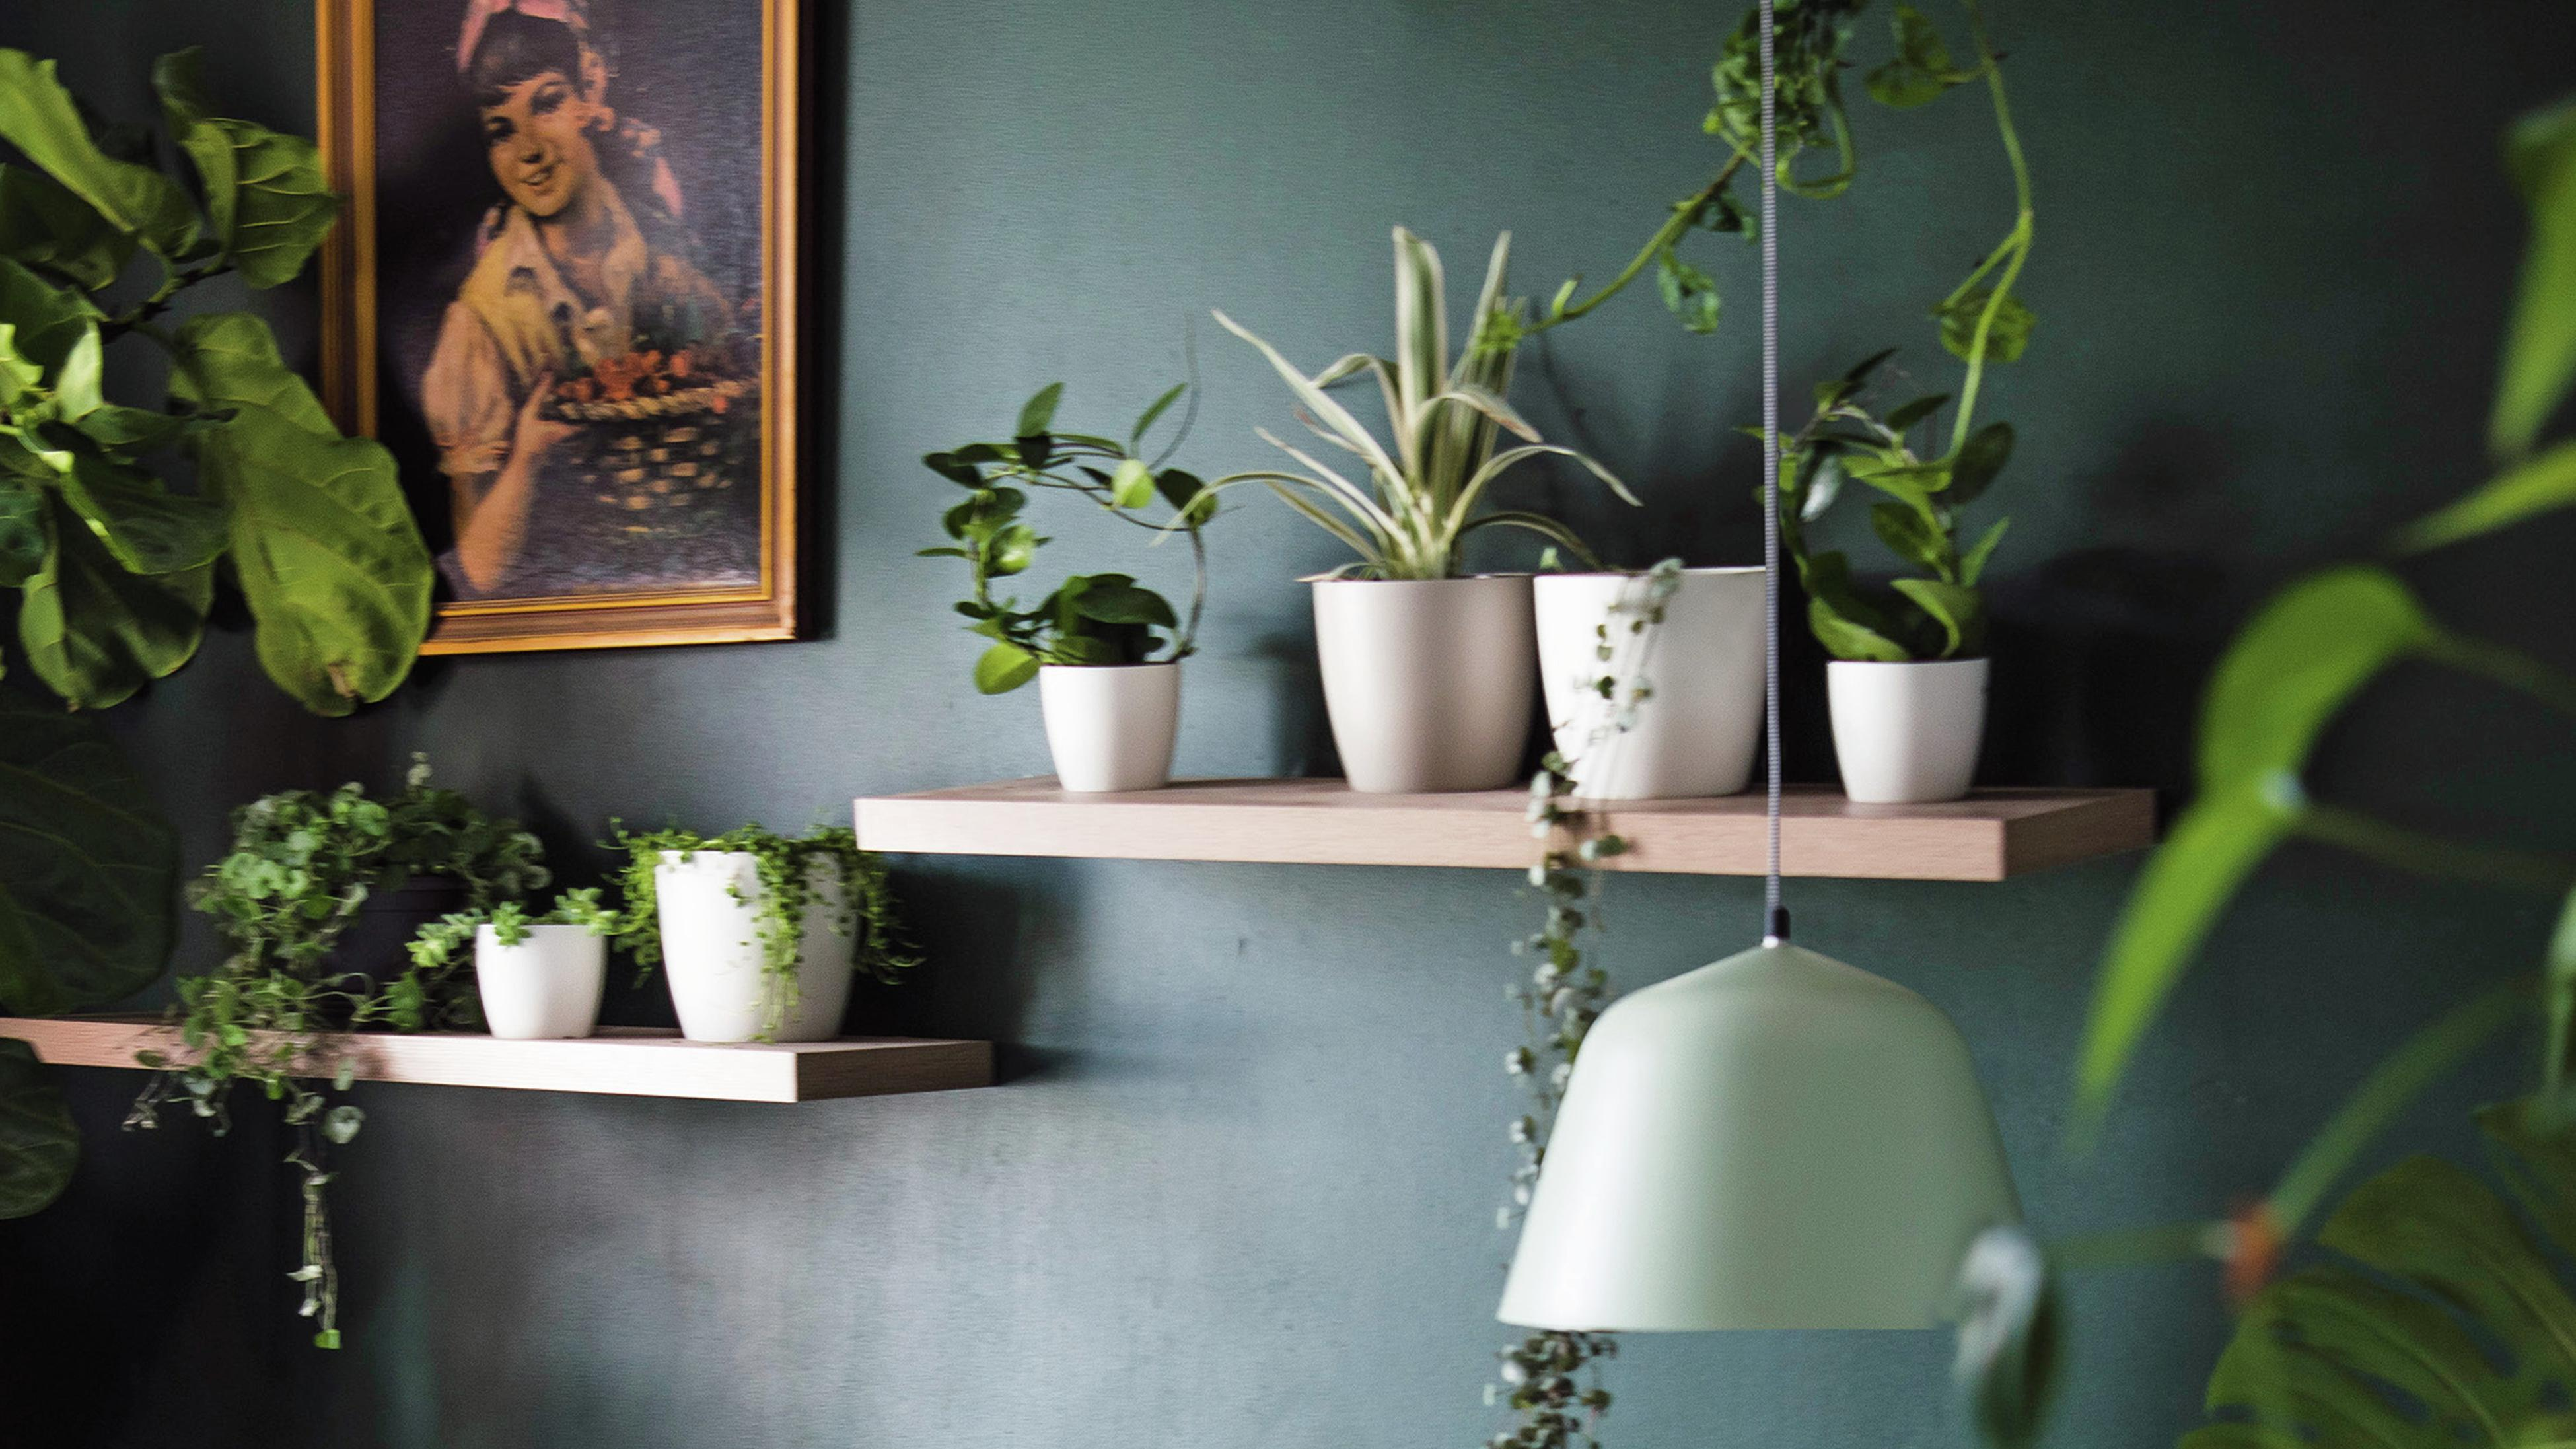 Green bedroom feature wall and floating shelves carrying small potted plants